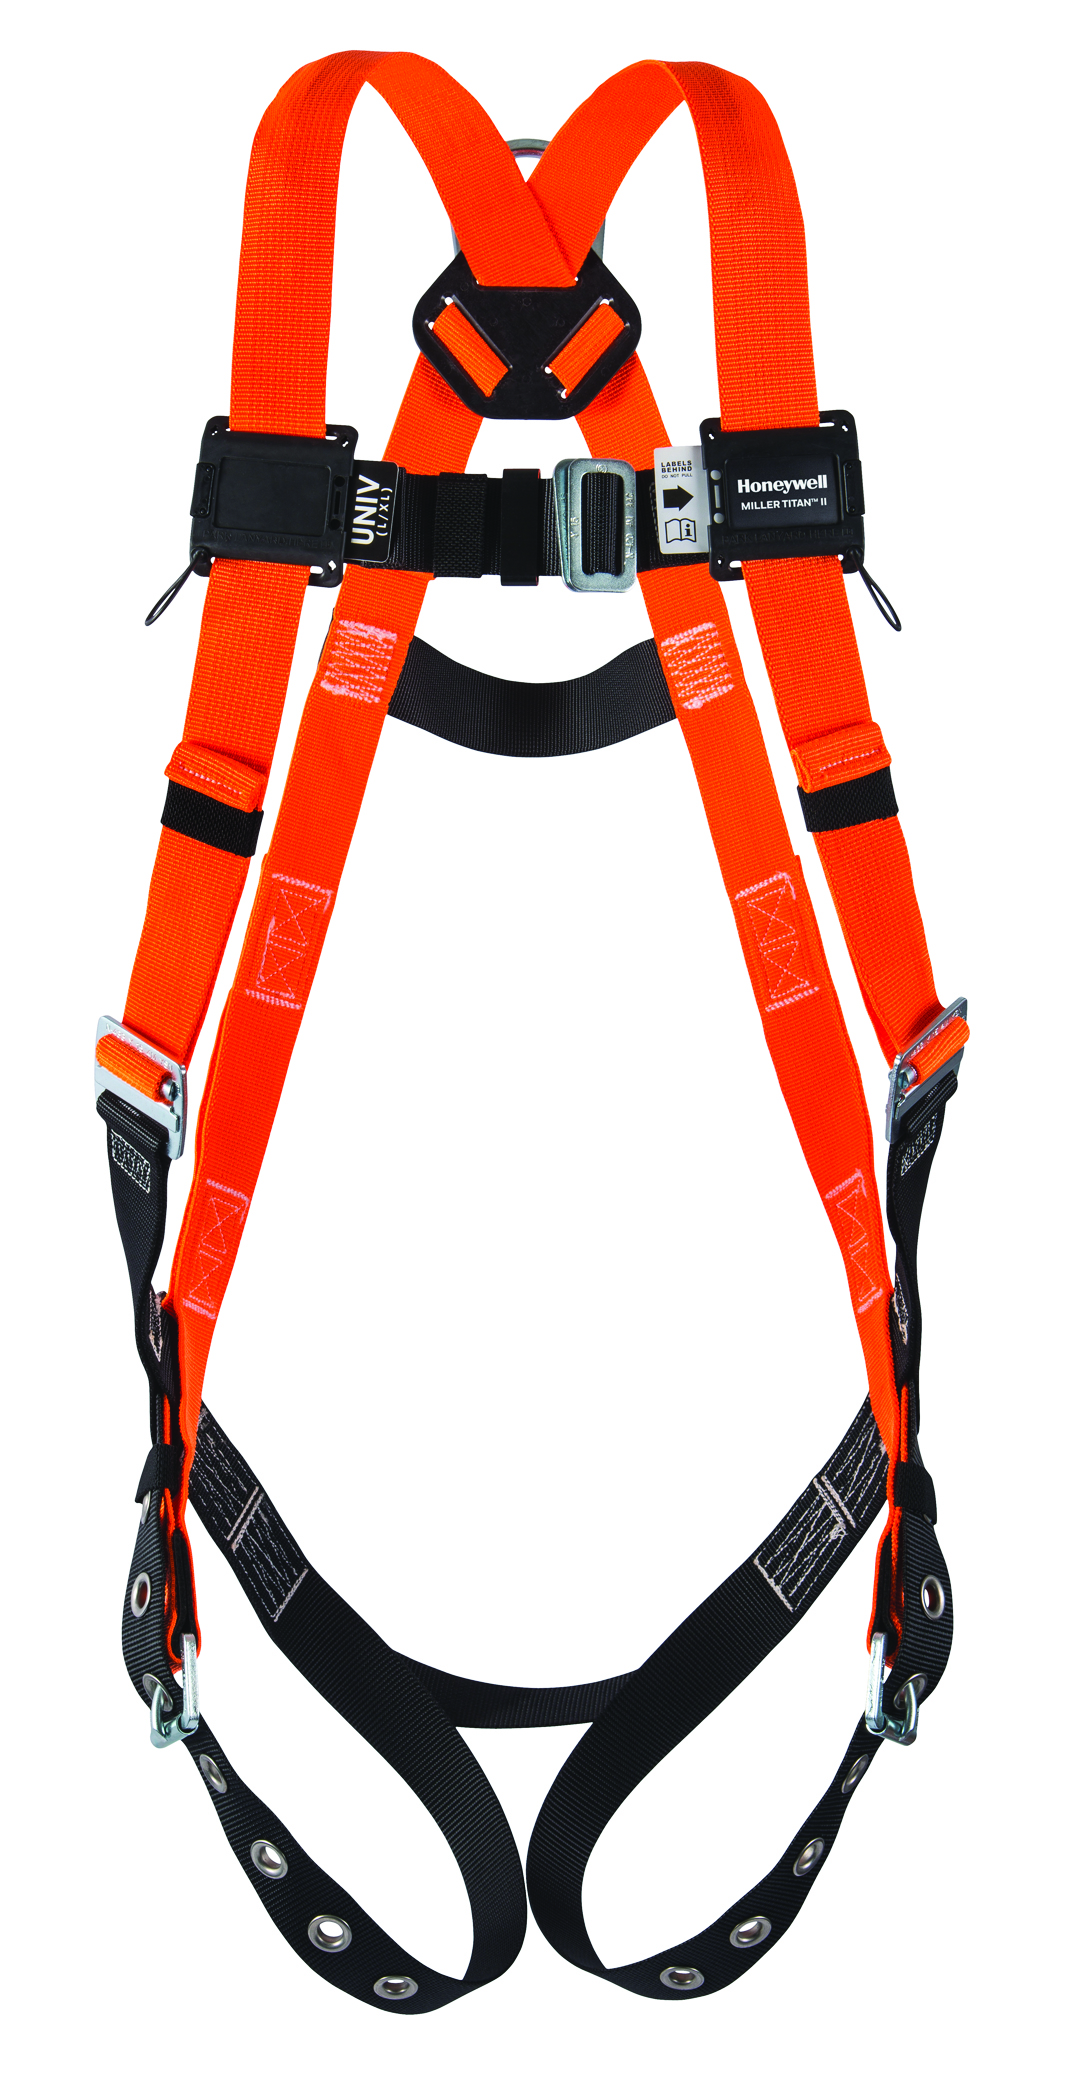 TF4007/UAK - Miller Titan II T-Flex™ Stretchable Harnesses-With Sliding Back D-Ring; Side D's, Mating Buckle Legs, Chest and Shoulder Straps; Sub-Pelvic Strap-Universal Size (Large/XLarge)----UOM: 1/EA